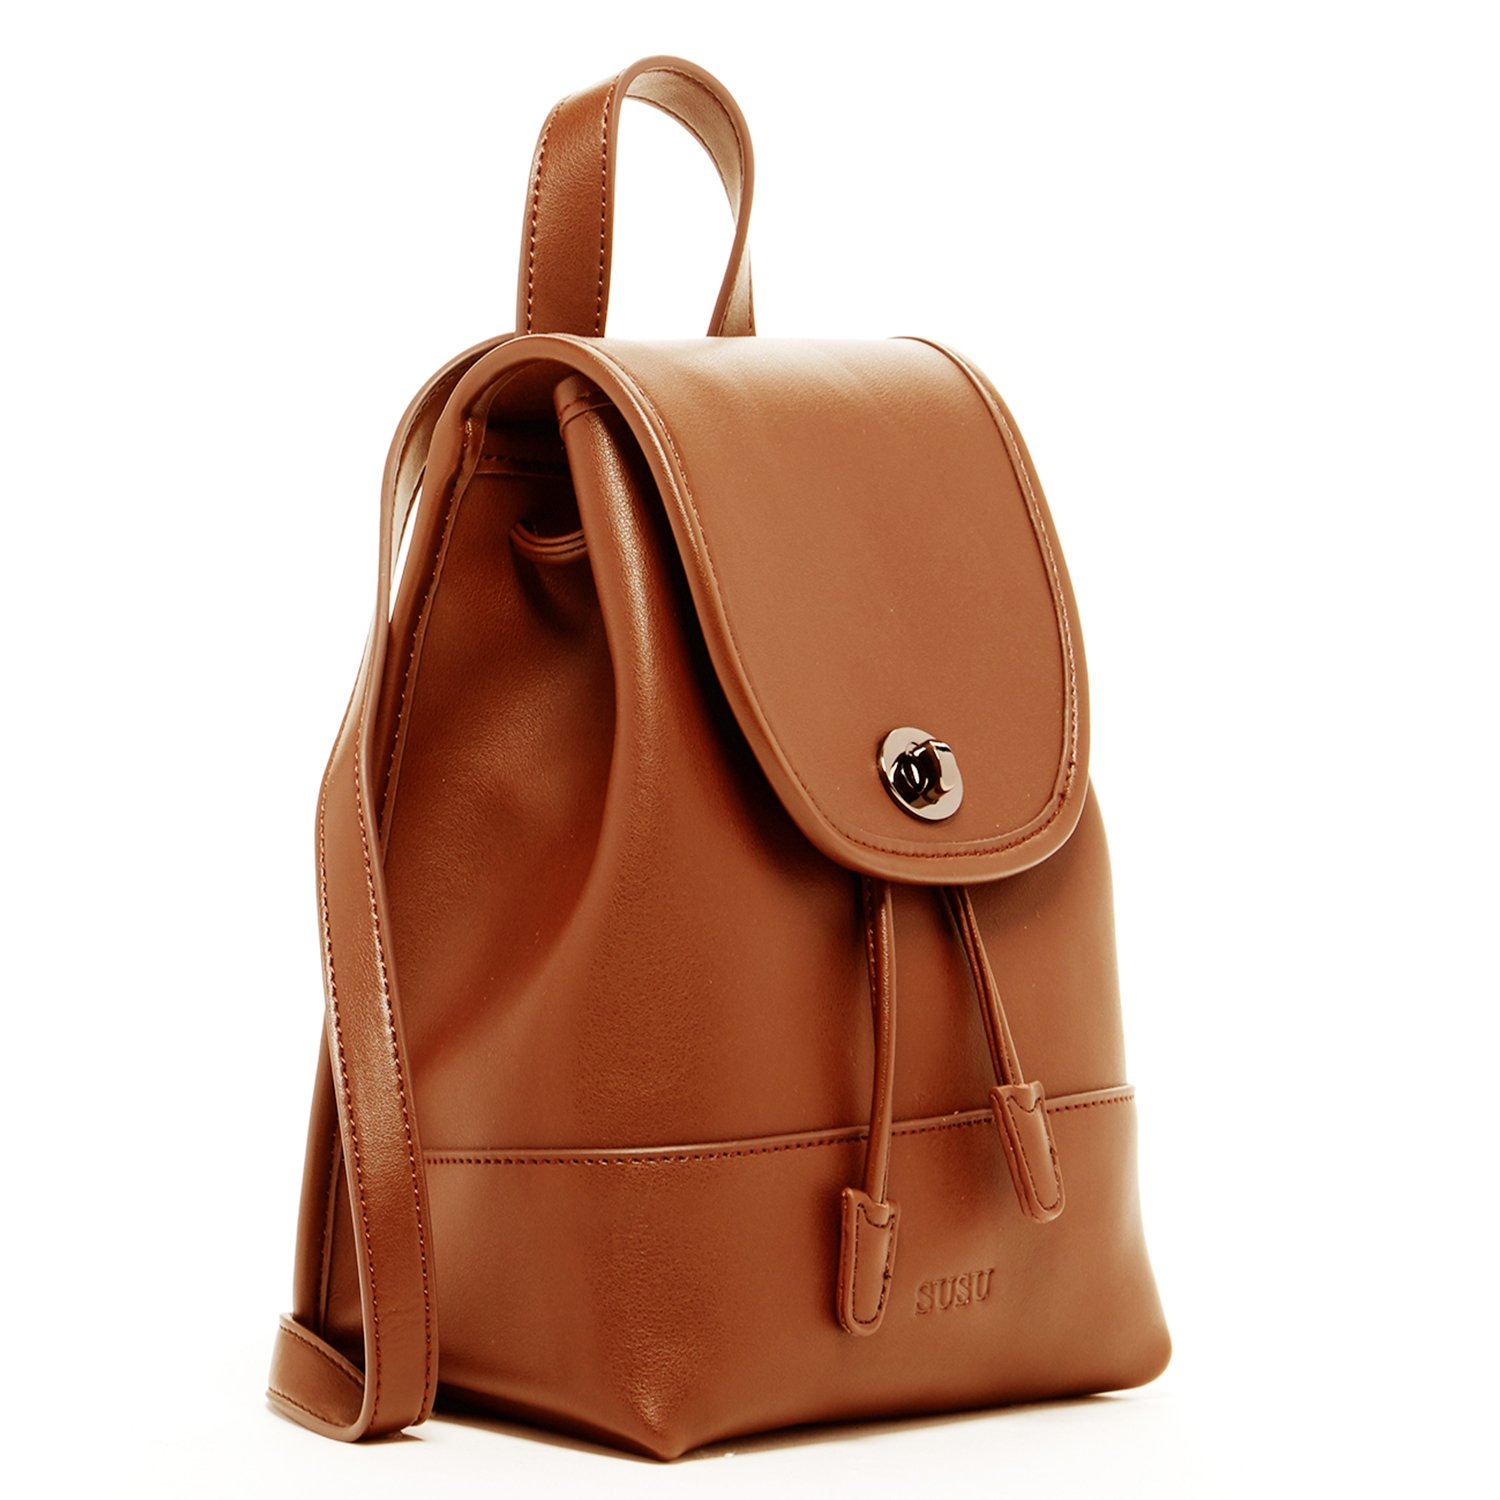 Brown Leather Backpack For Women Small Fashion Backpacks Purse For Travel Designer Vintage Style Pocket book For Girls Knotted Drawstring Tip